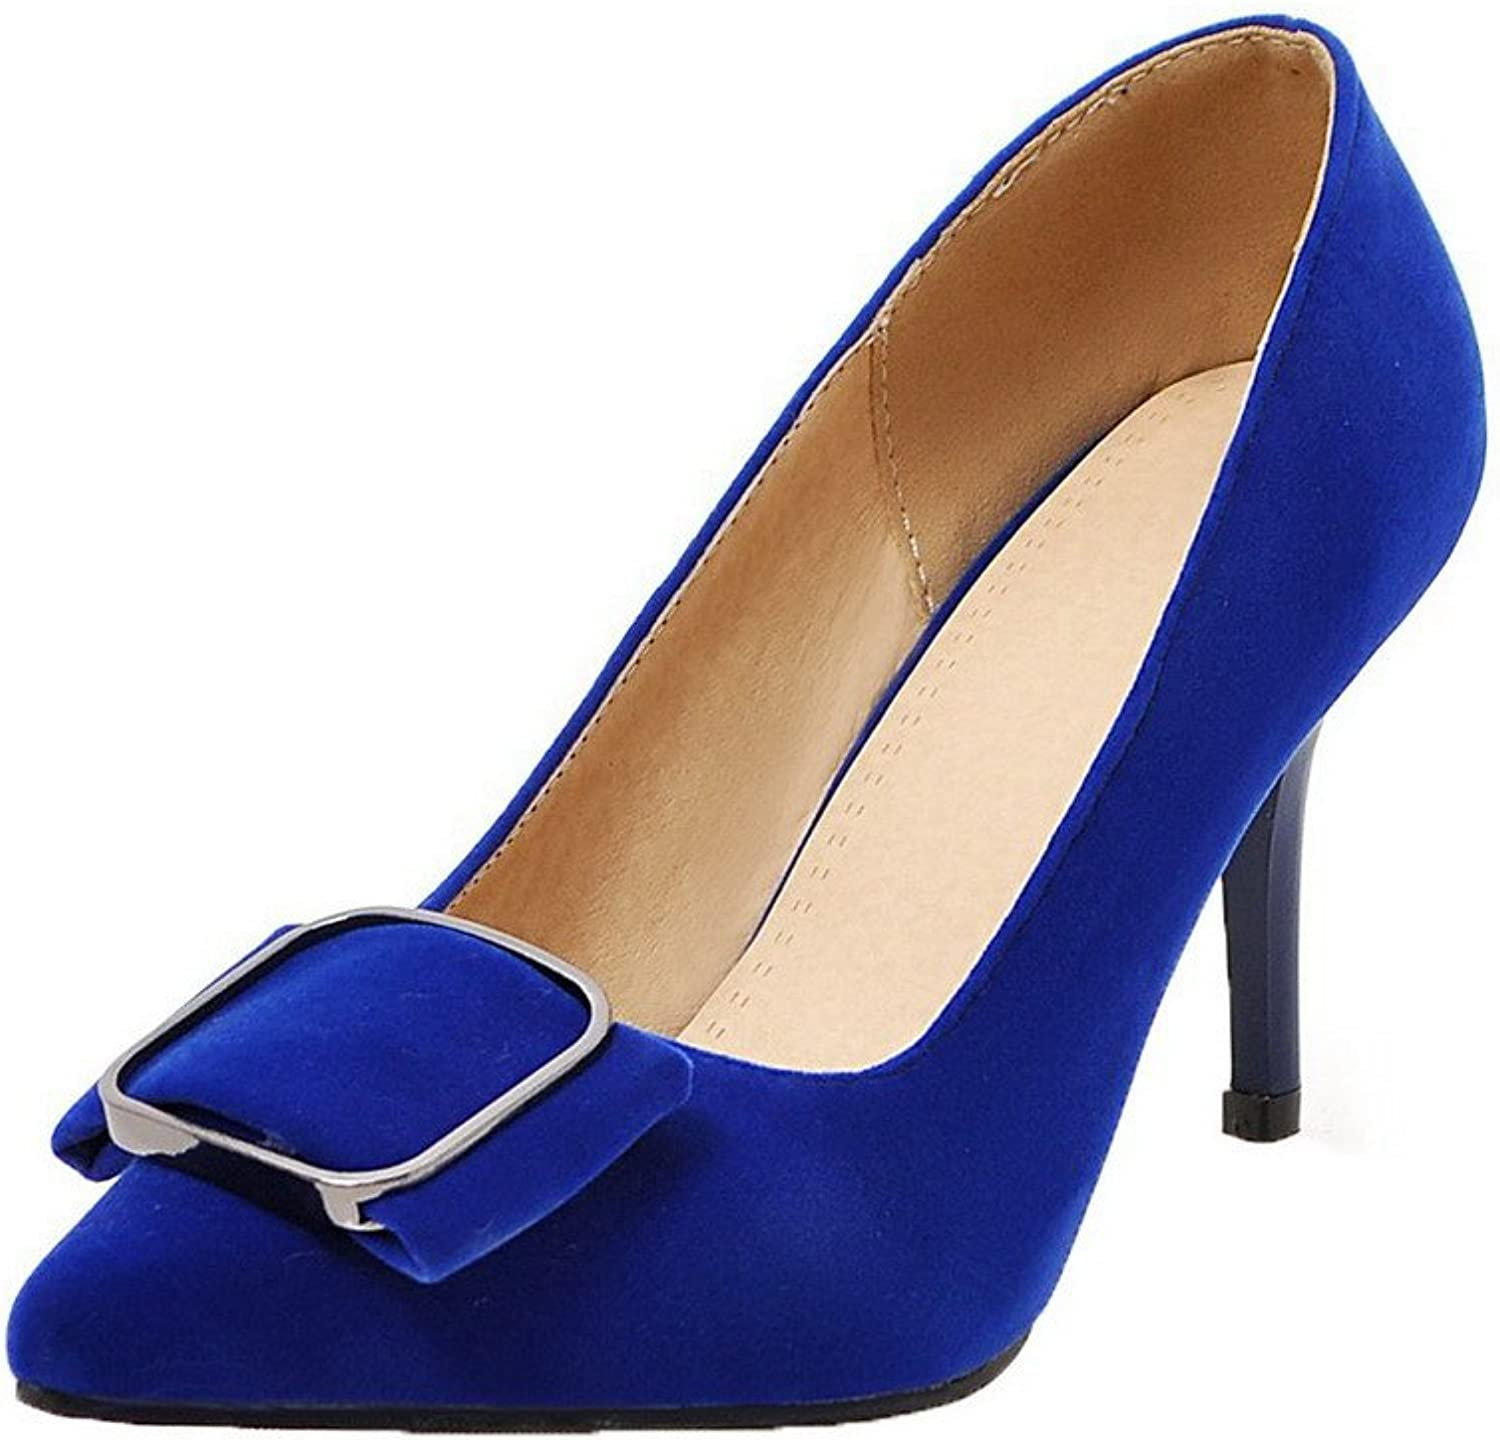 WeenFashion Women's Pull-On Pointed Closed Toe Frosted Solid Pumps-shoes,AMGDX006110